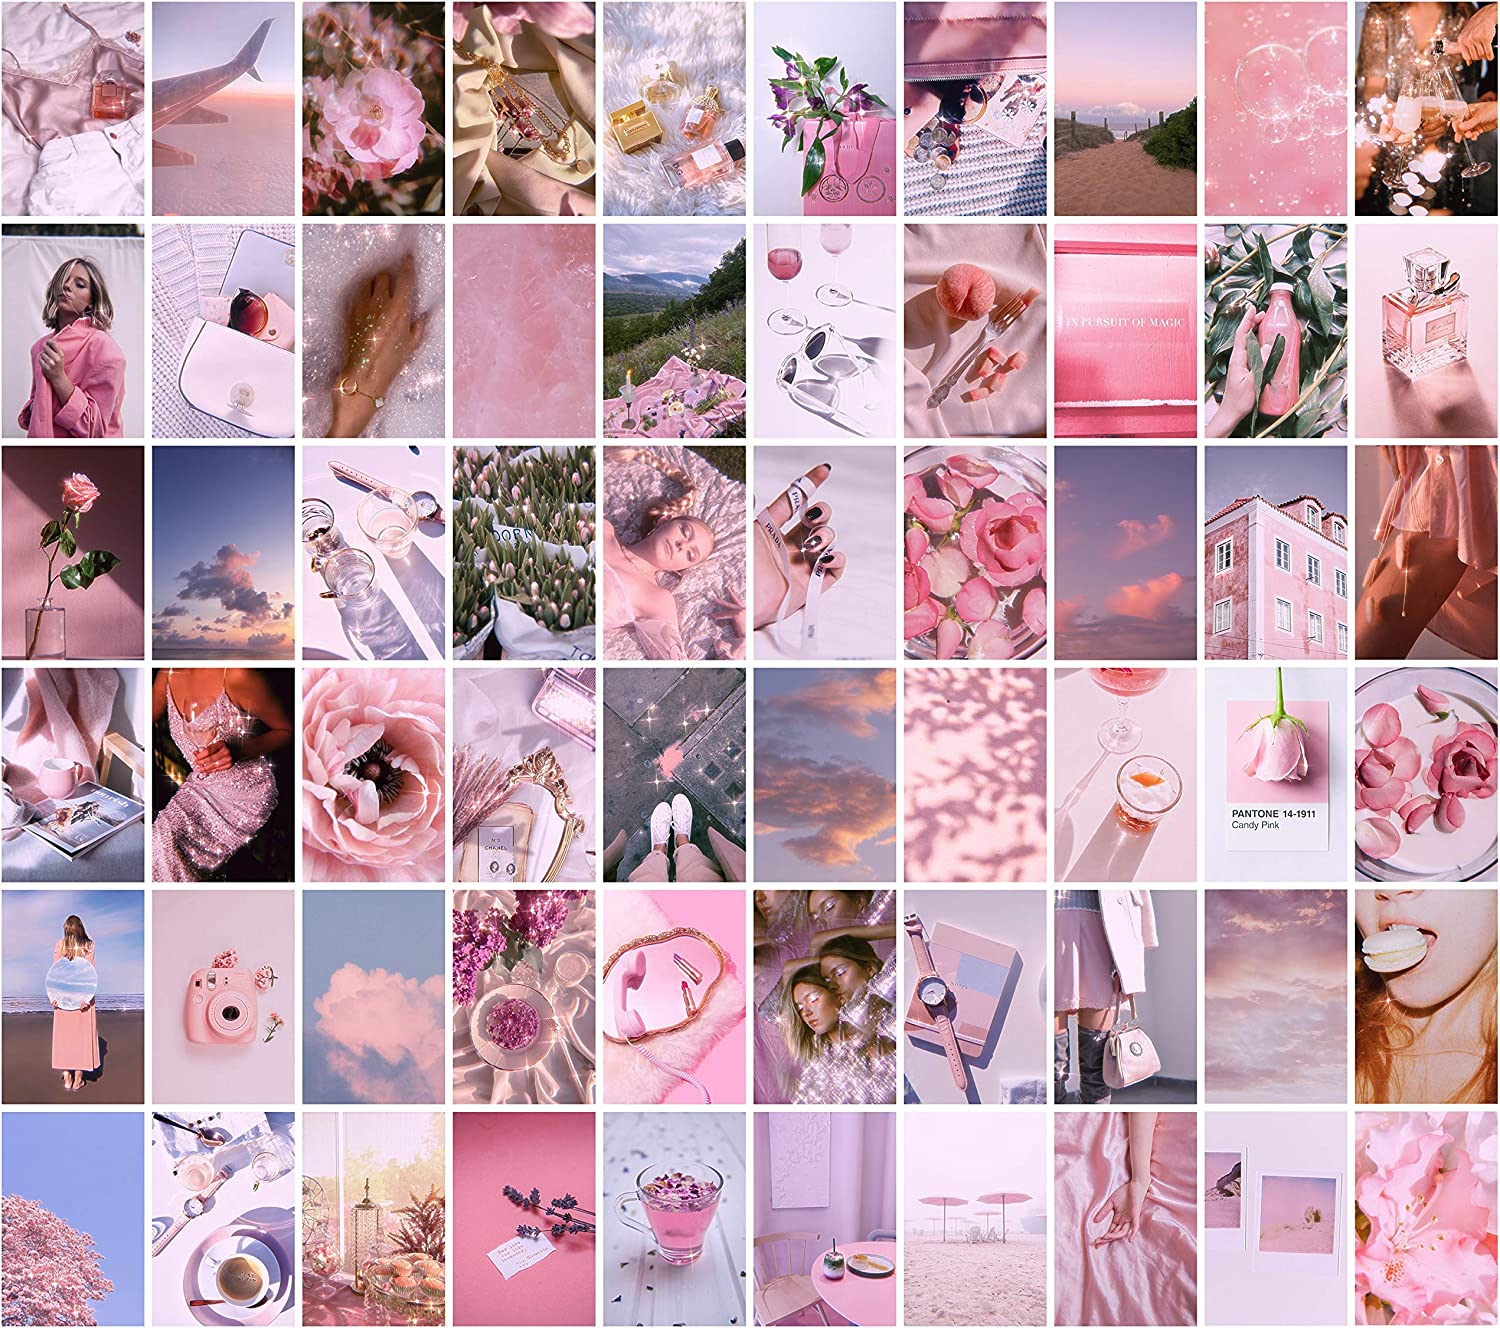 Cerise Design Pink Wall Collage - Pink Collage Kit for Wall Aesthetic, 60 set 4x6 prints, Wall Collage Kit Pink, Pink Photo Wall Collage Kit, Pink Wall Decor